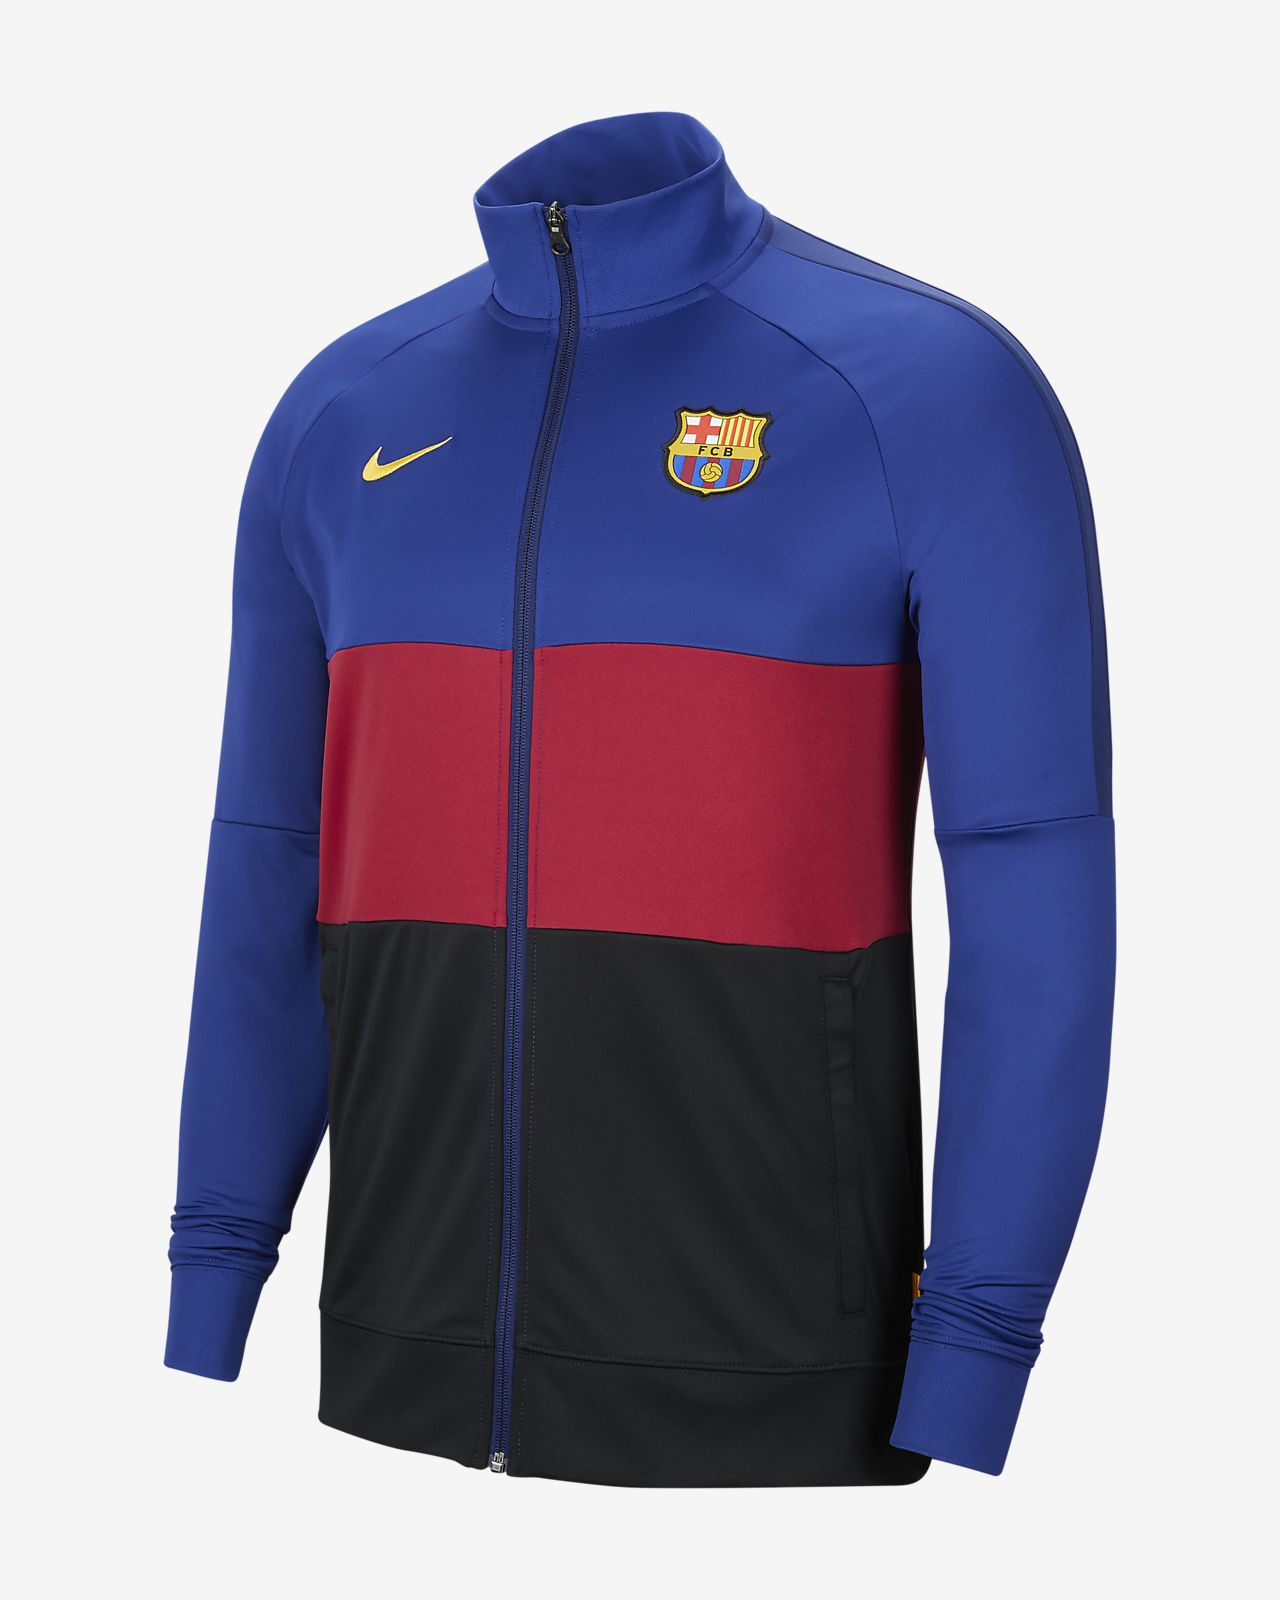 F.C. Barcelona Men's Football Tracksuit Jacket